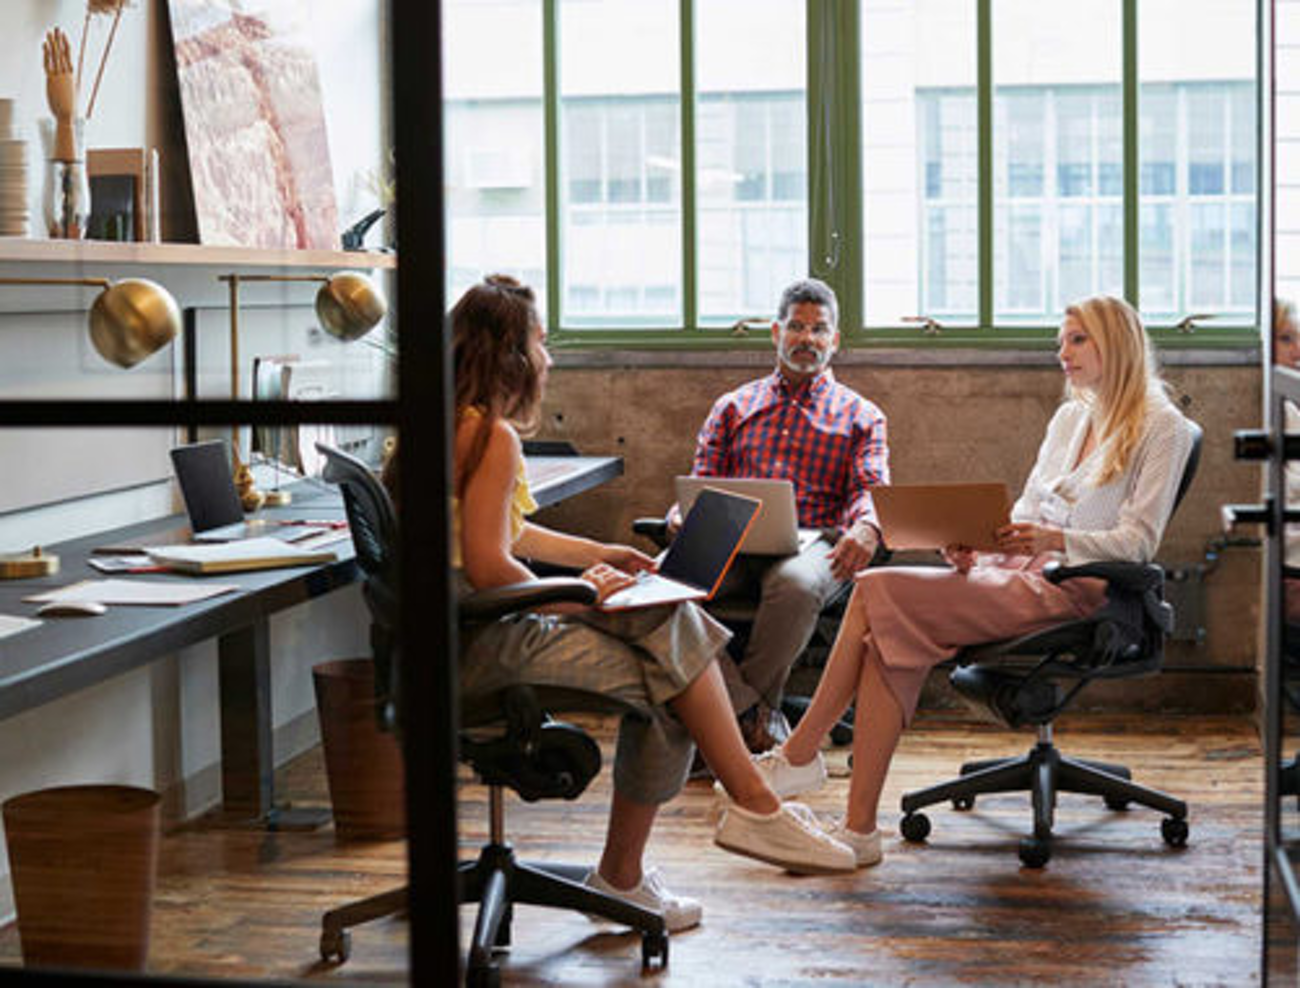 What are the 5 key elements to a good office design?